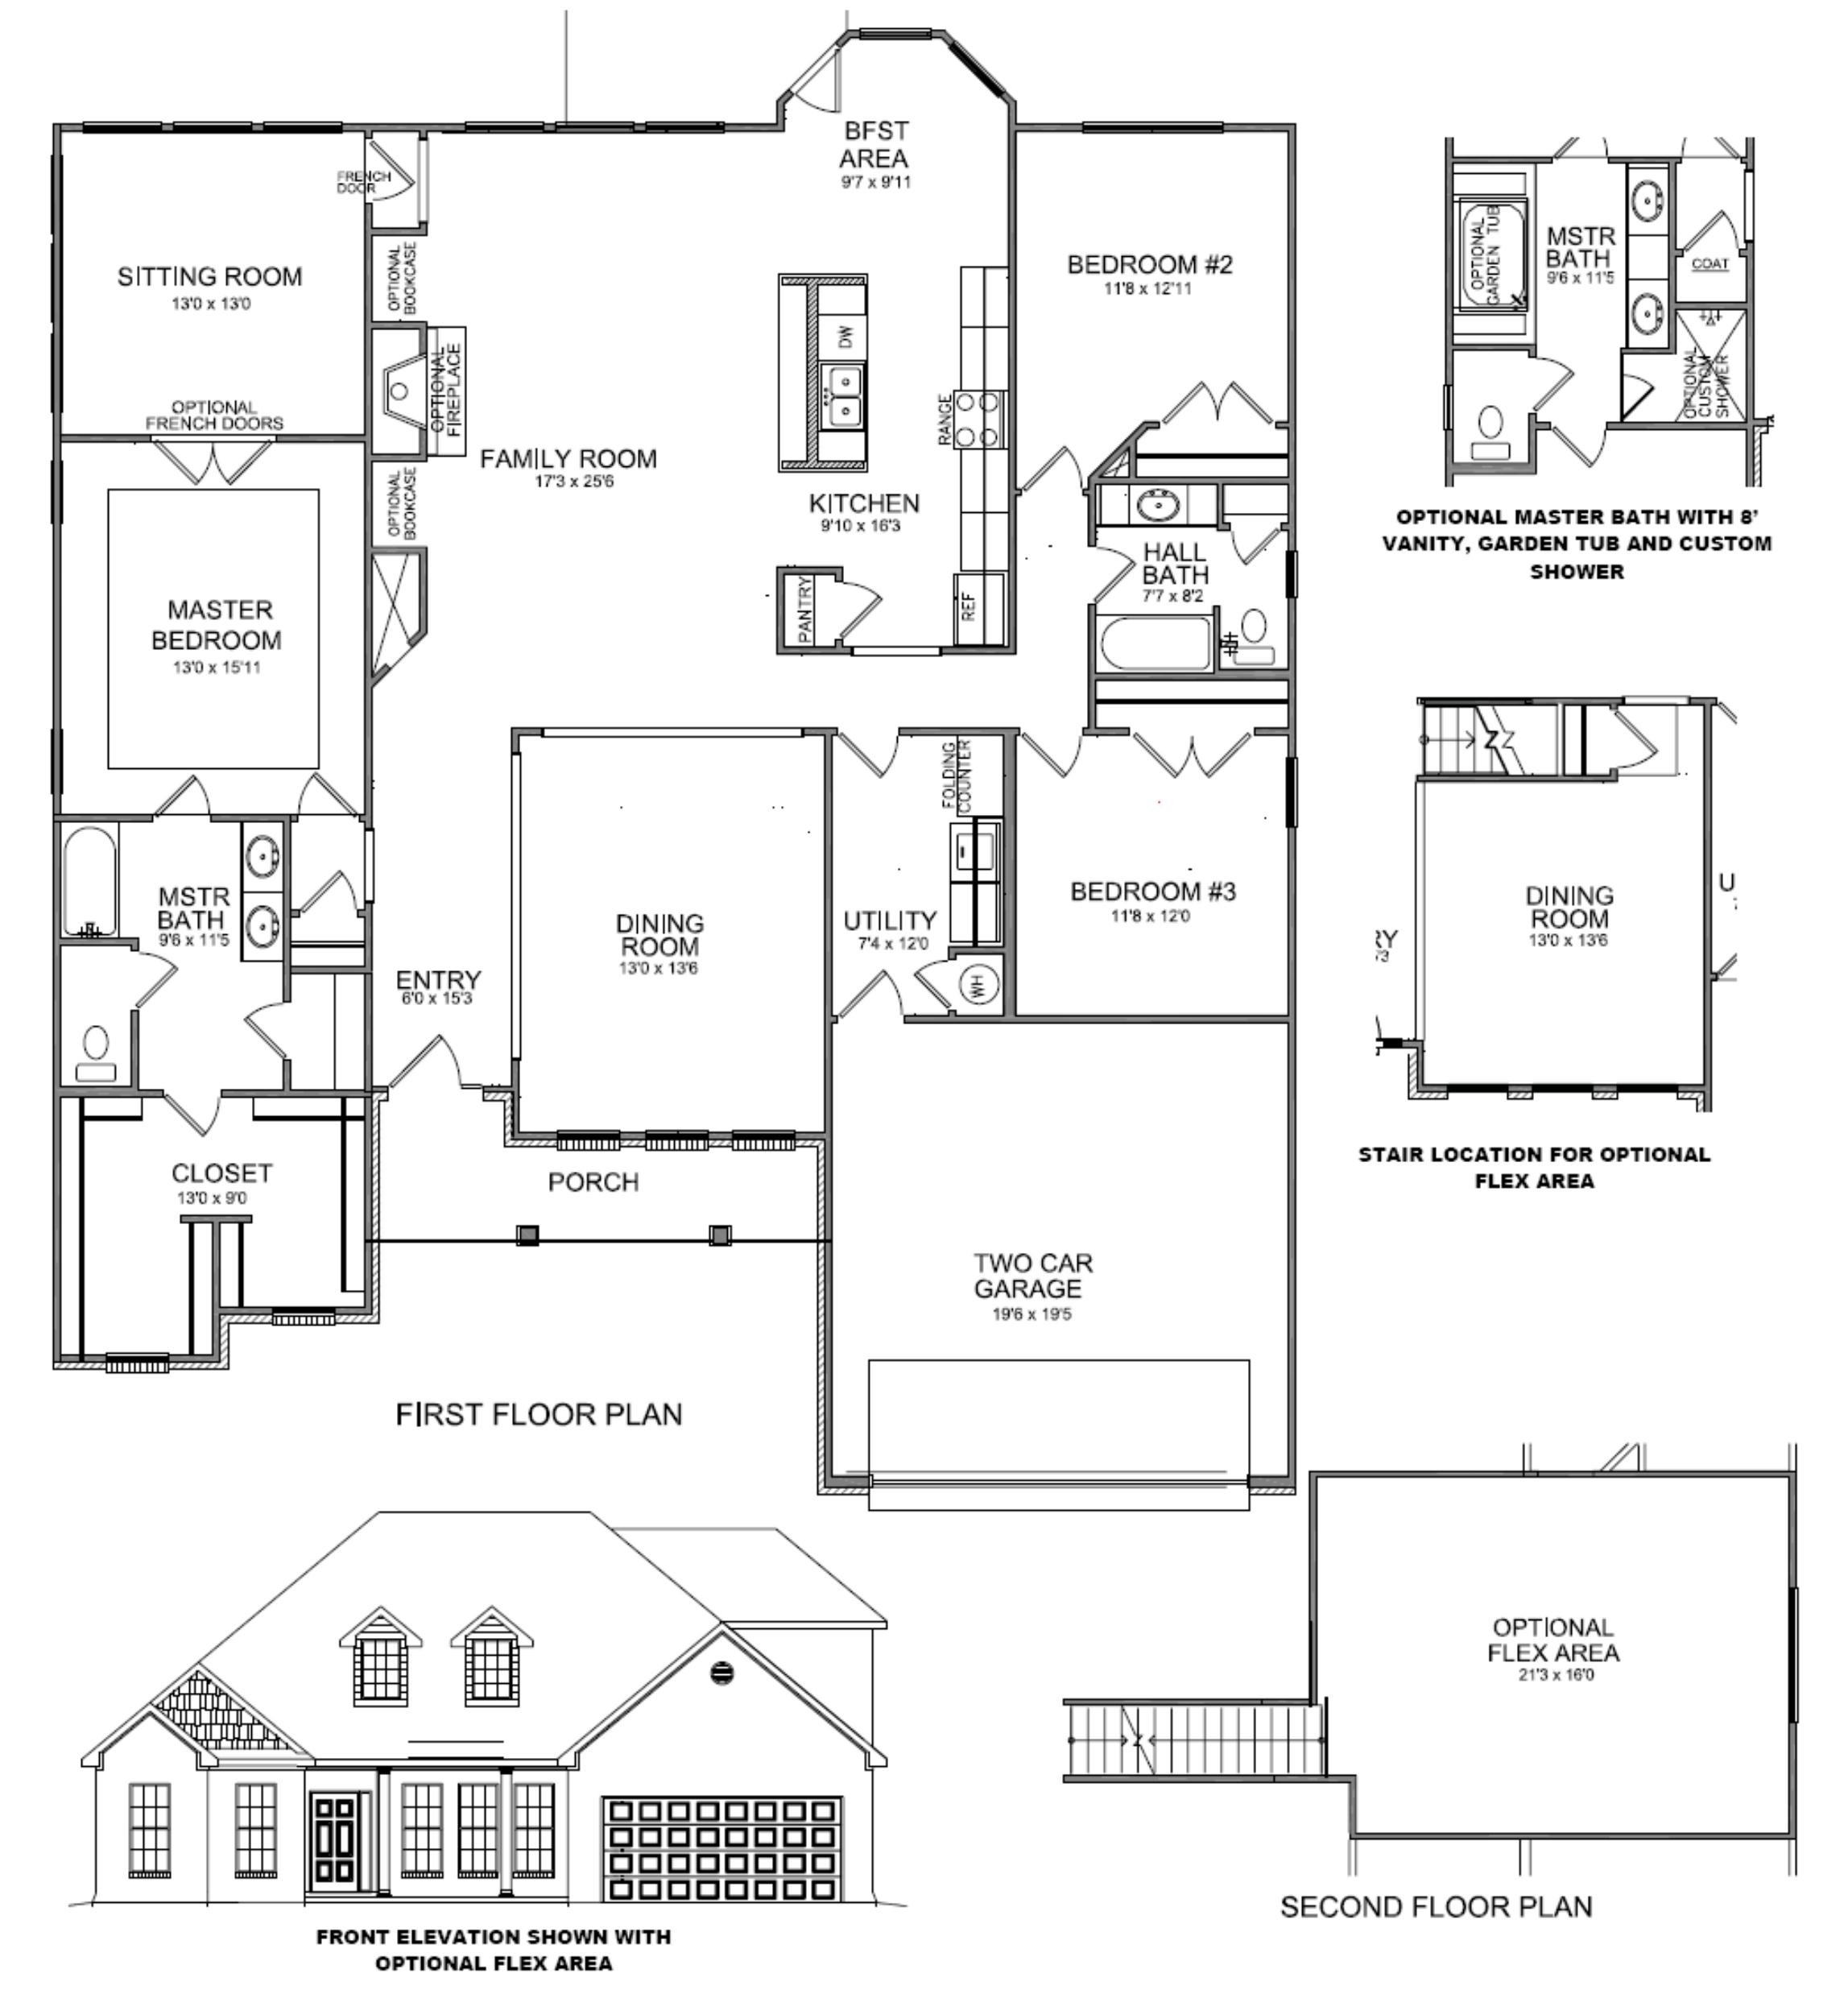 Family Room Floor Plan 11 floor plans that say come over for the The Master Suite Includes A Sitting Room That Can Be Accessed From The Family Room Or By Optional Double French Doors Direct From The Master Suite